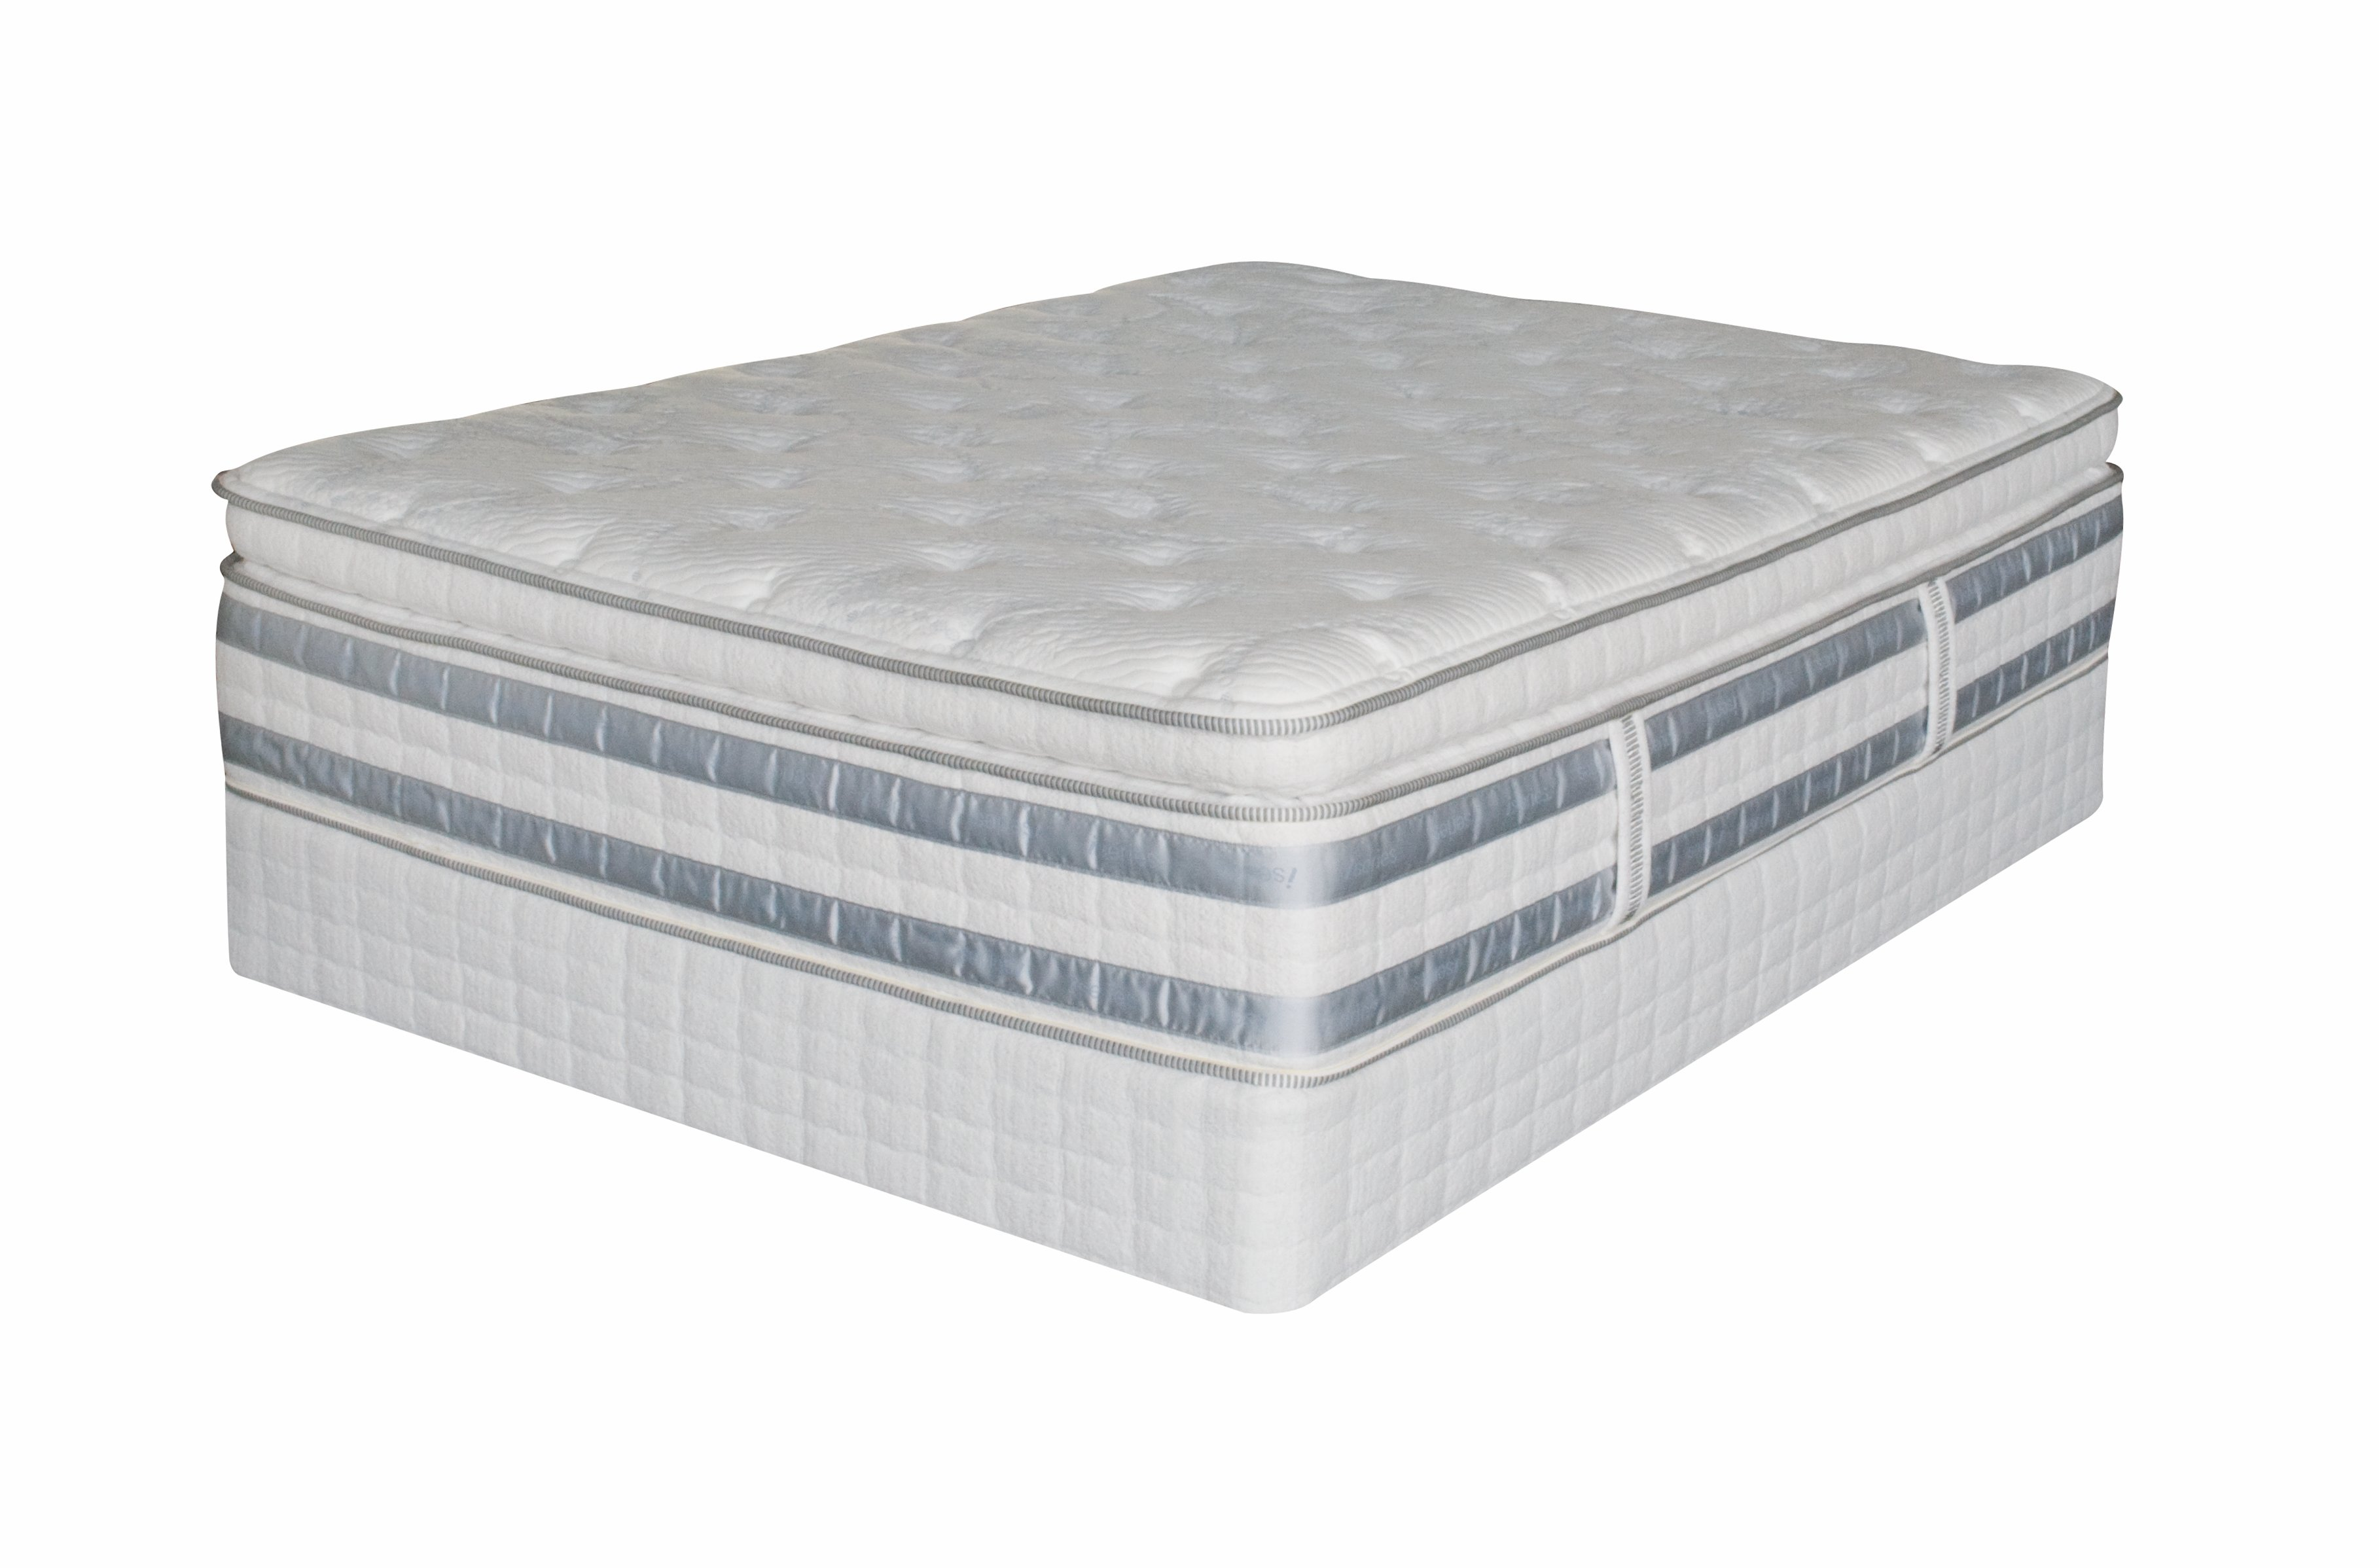 Serta Perfect Day iSeries Recognition Super Pillow Top  Mattress Reviews  GoodBedcom